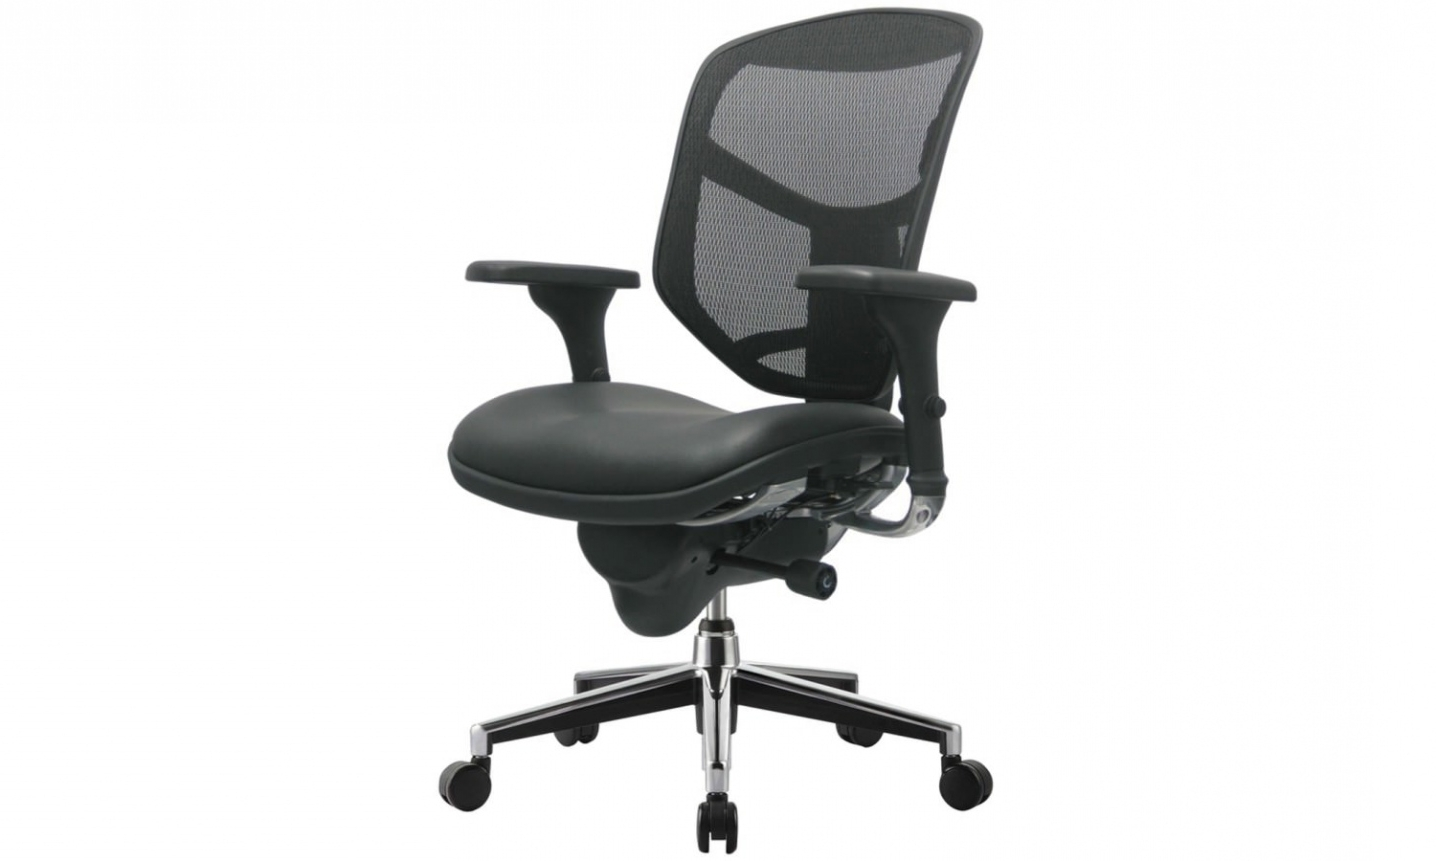 Executive Office Chairs With Adjustable Lumbar Support In Most Up To Date Office Chair With Adjustable Lumbar Support – Best Ergonomic Desk (View 17 of 20)